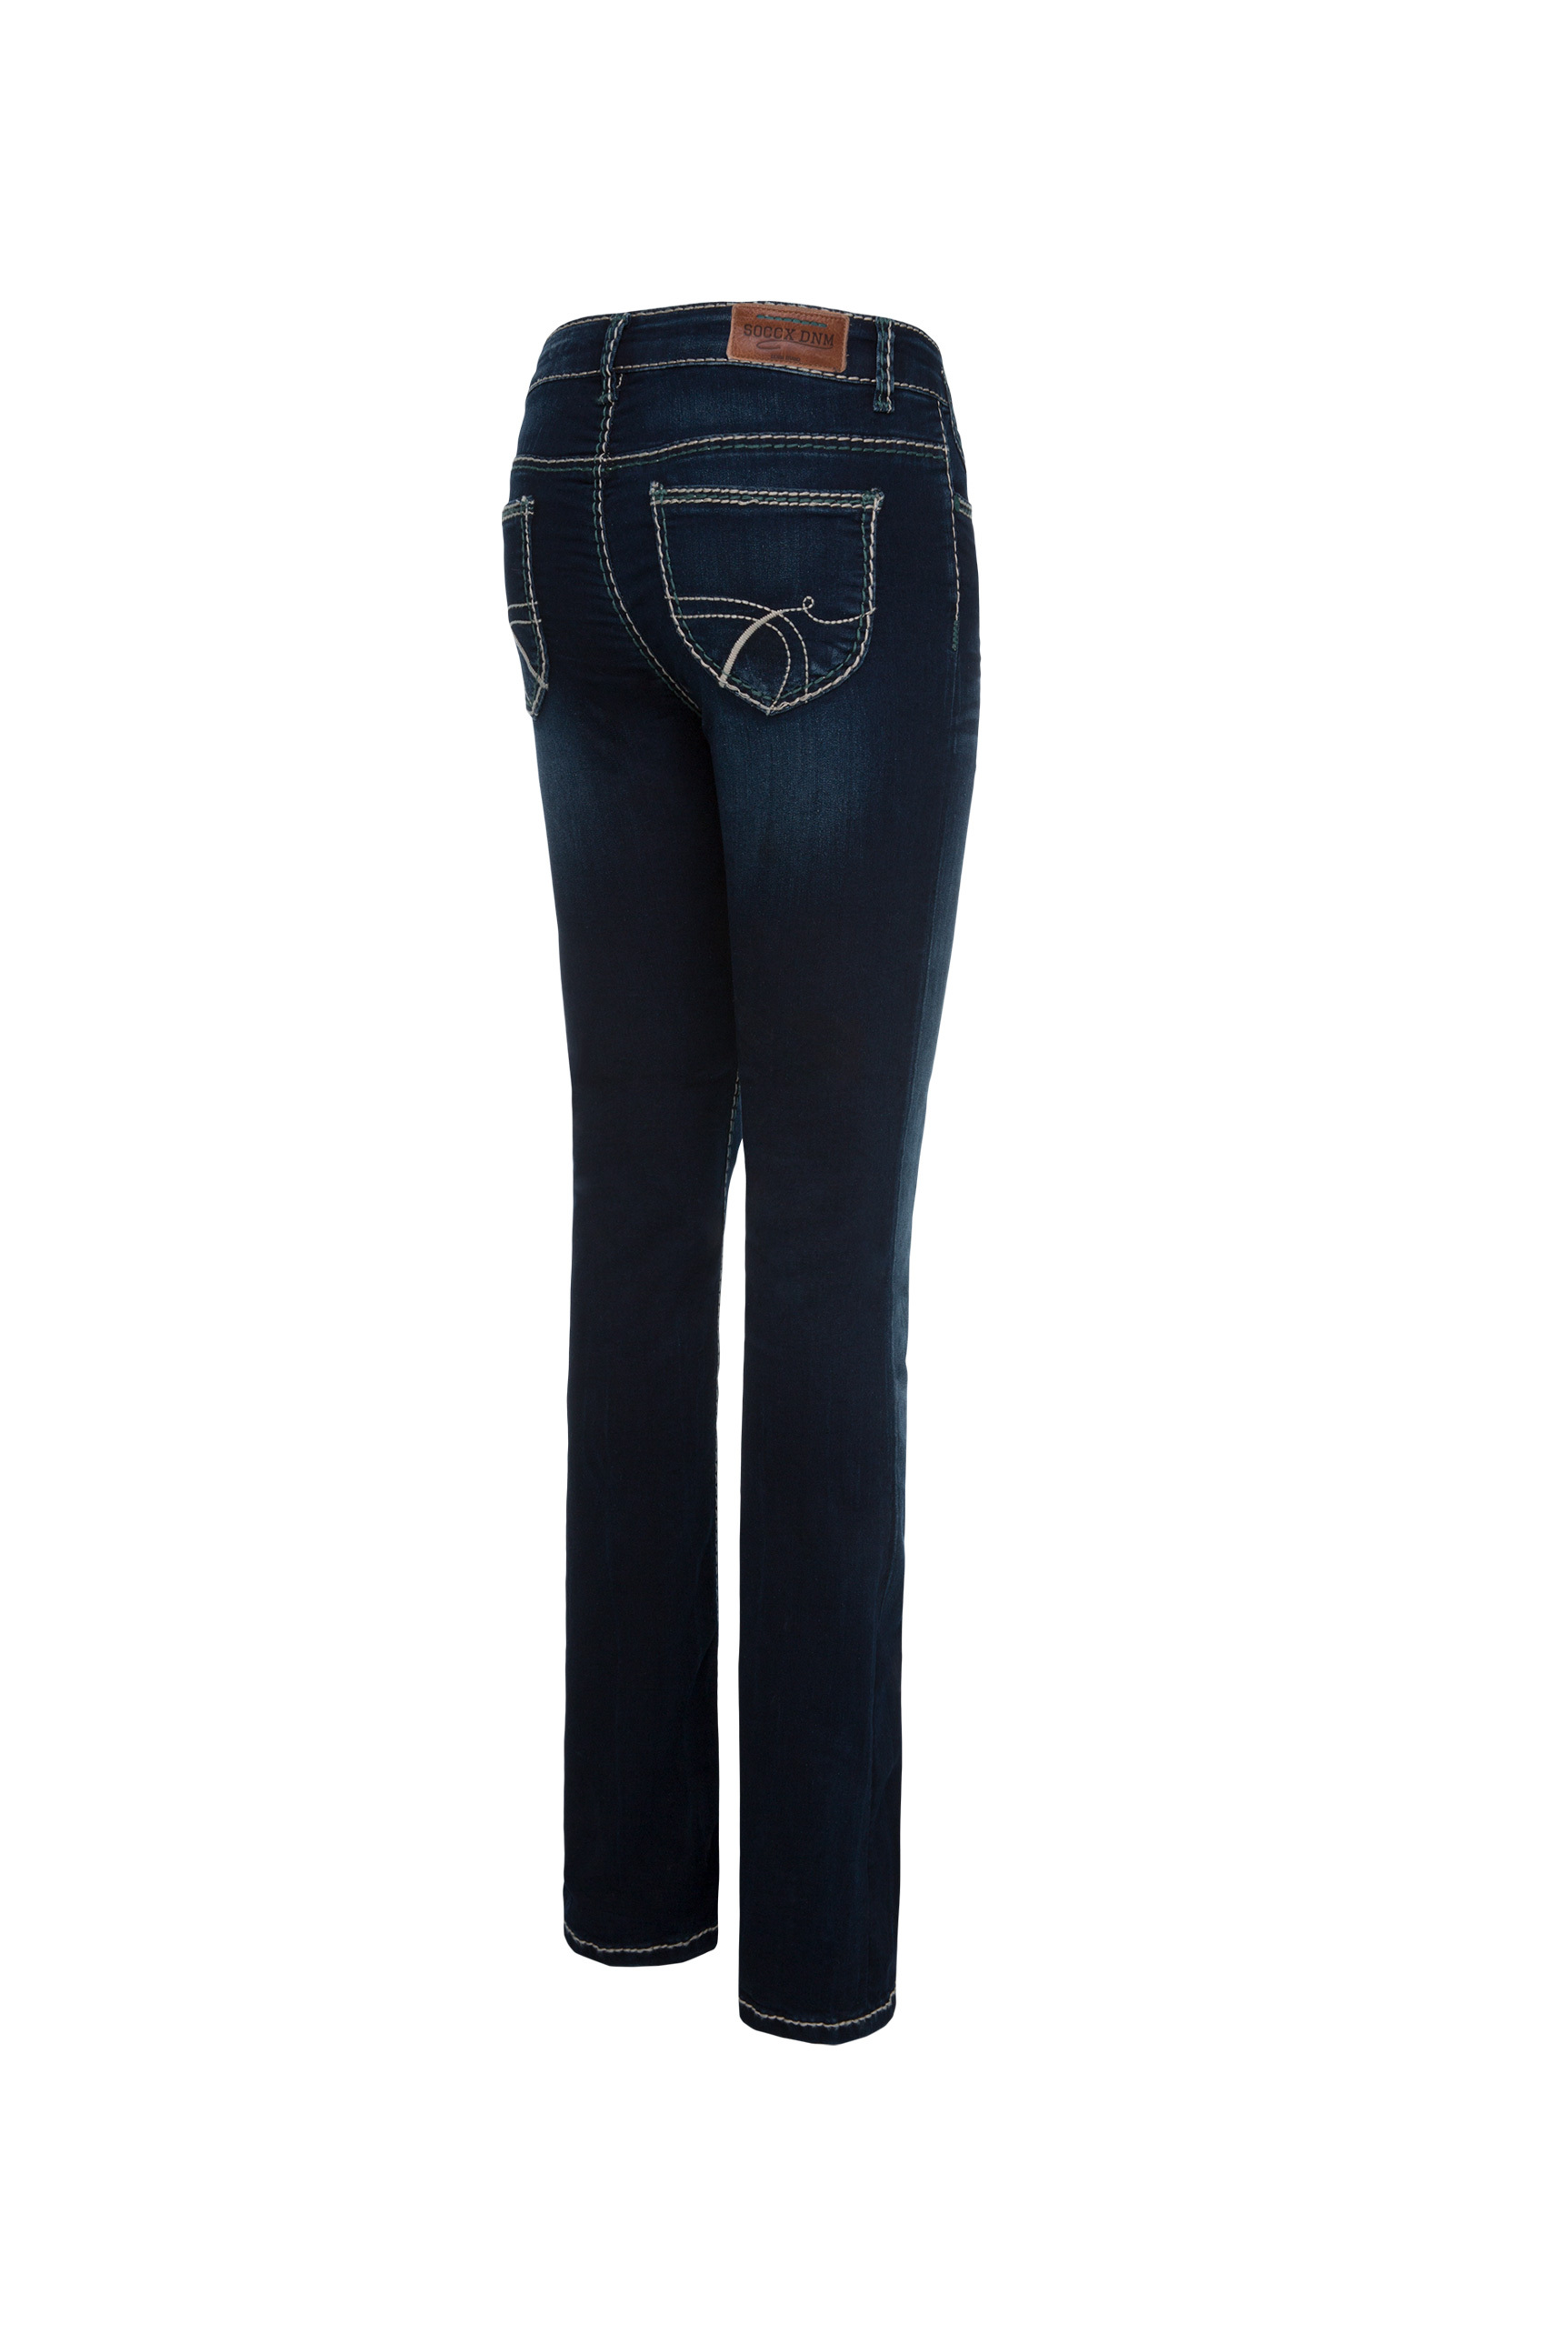 Bootcut Jeans CO:LE in Blue Black Used